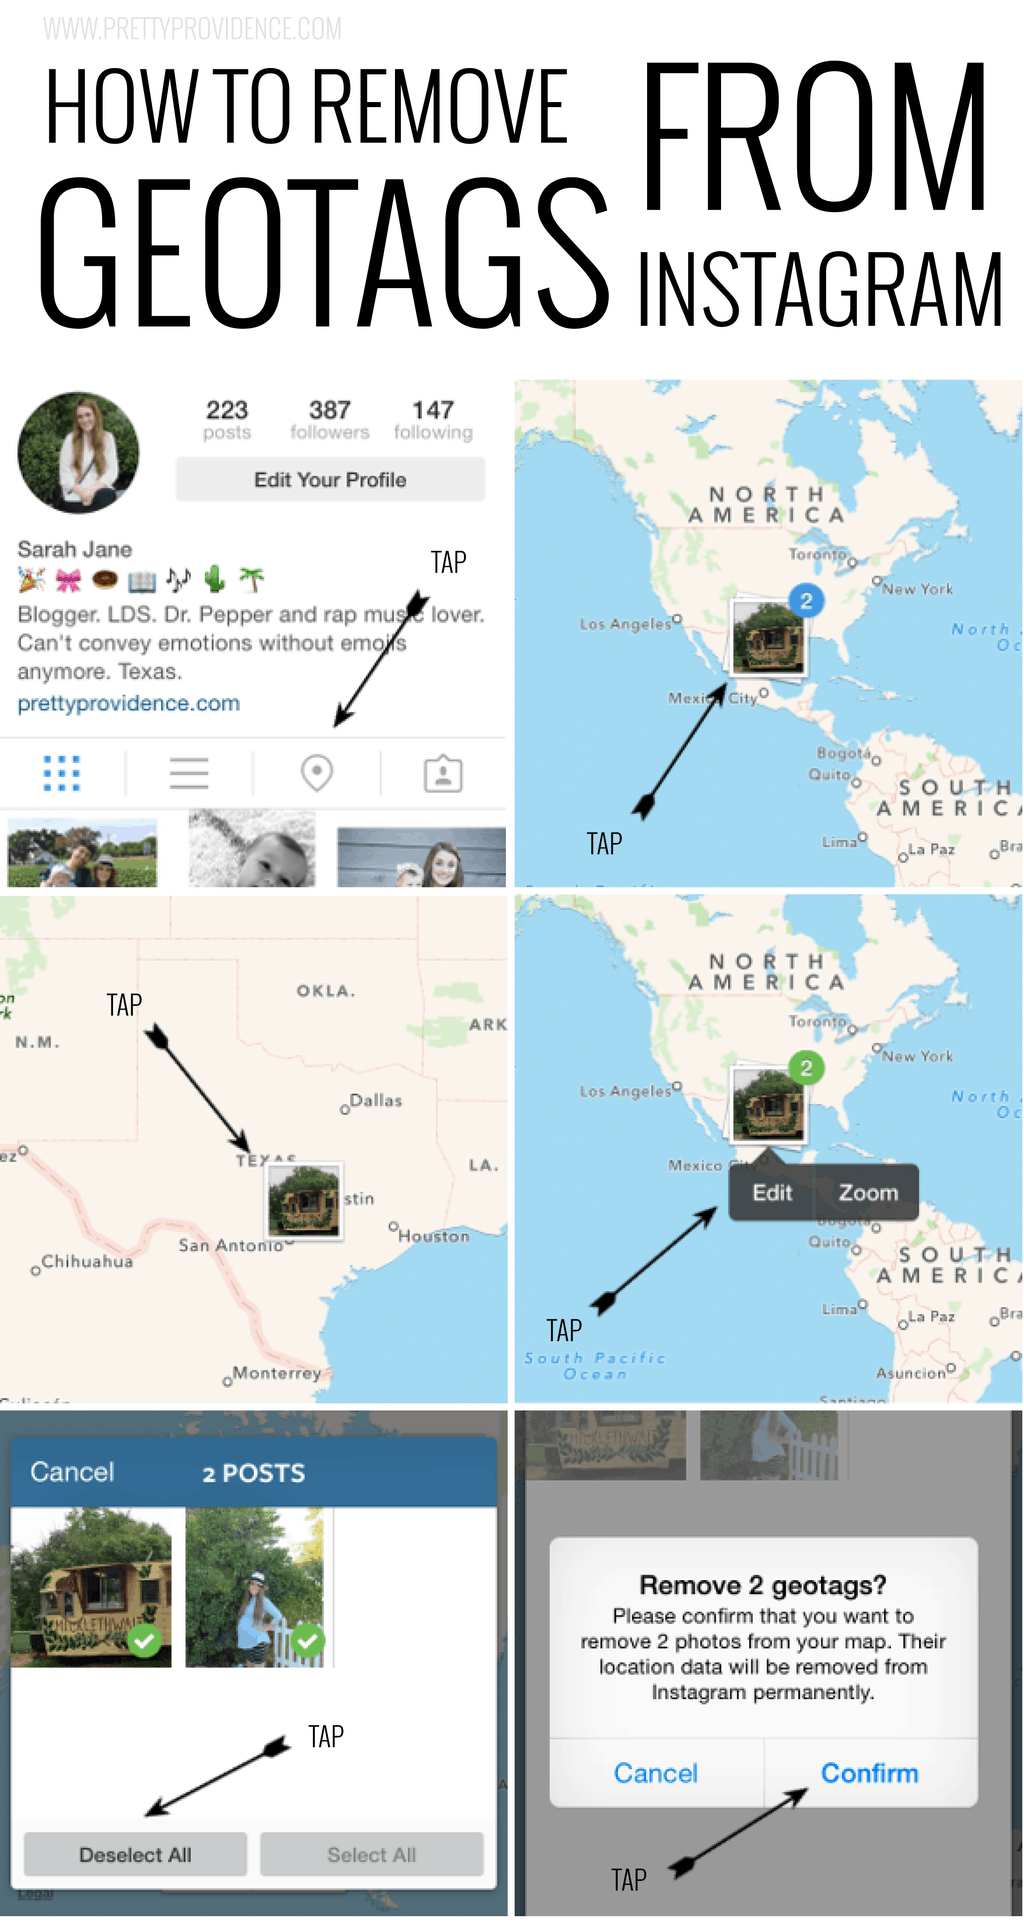 How to remove geotags from Instagram. You may not even know that your home address shows up there!